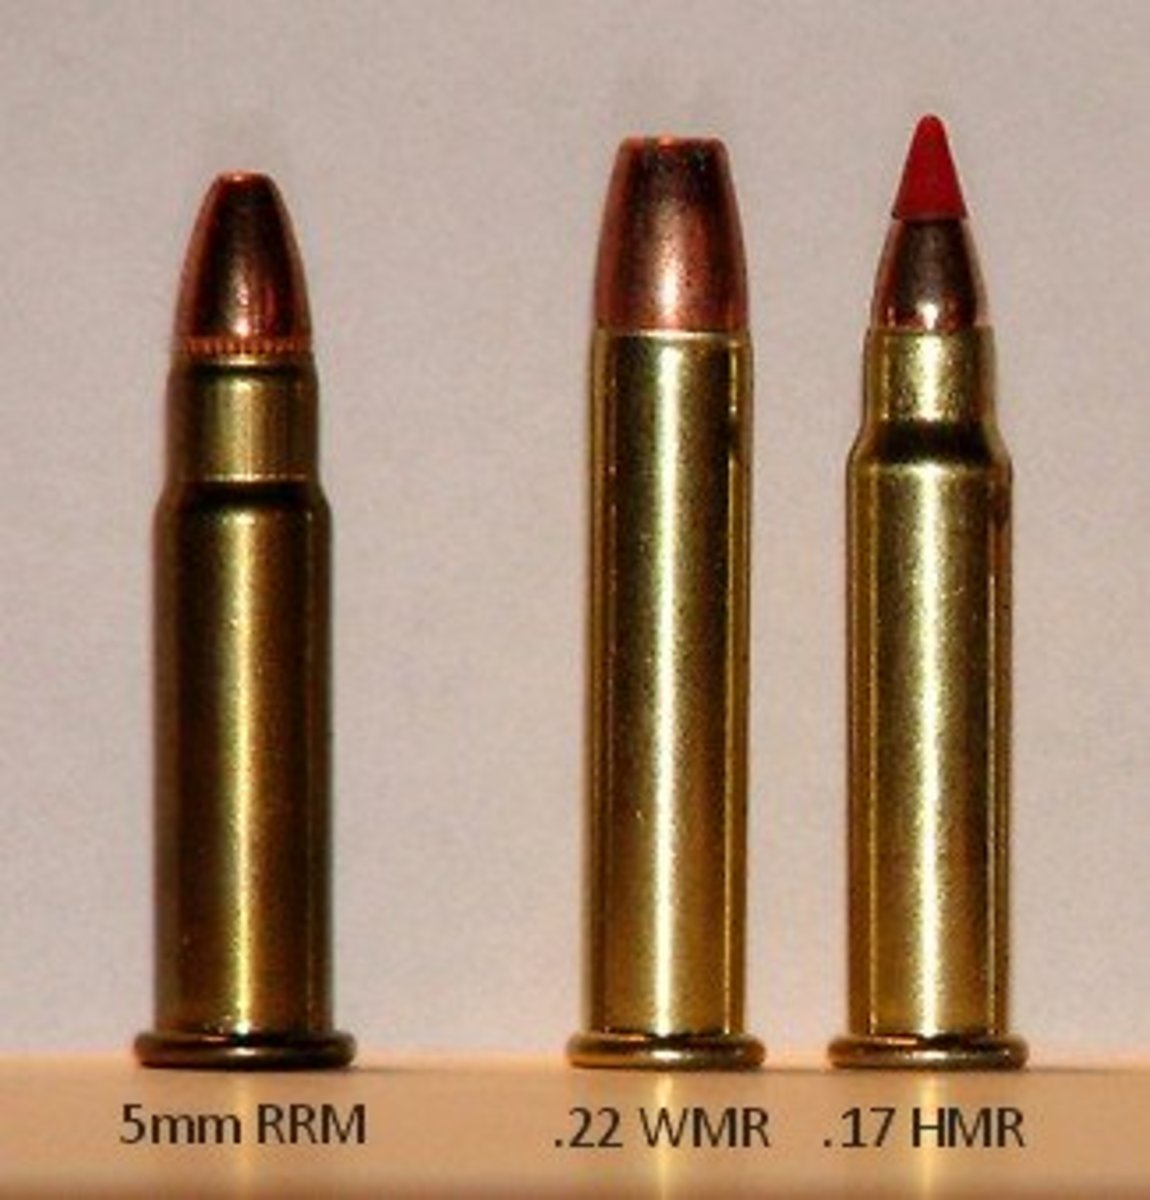 .17 HMR (far right)